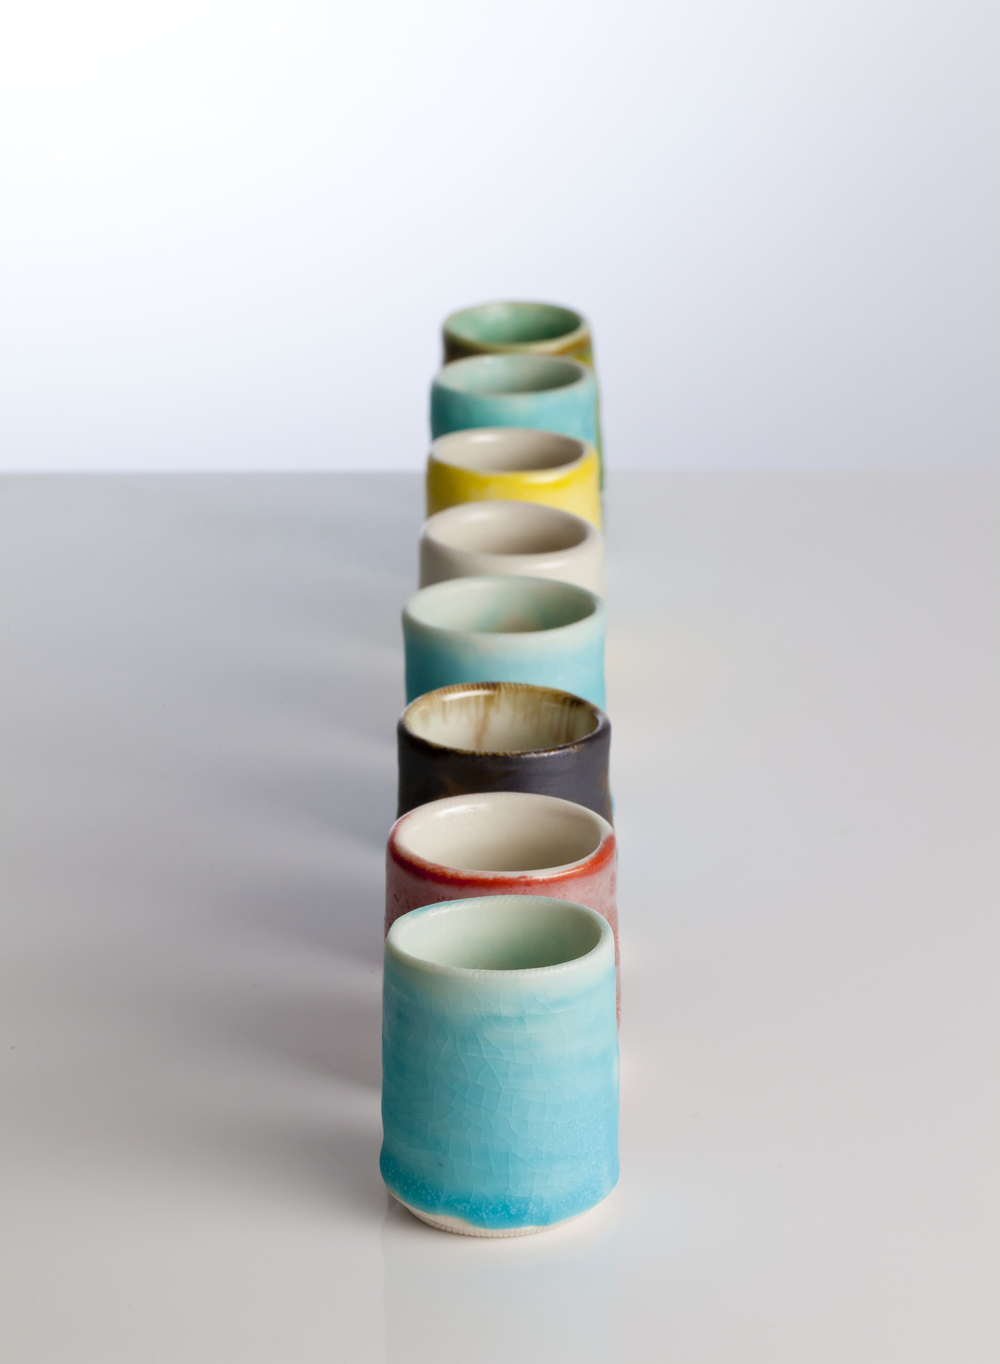 Coloured shots by ceramicist Gary Wood